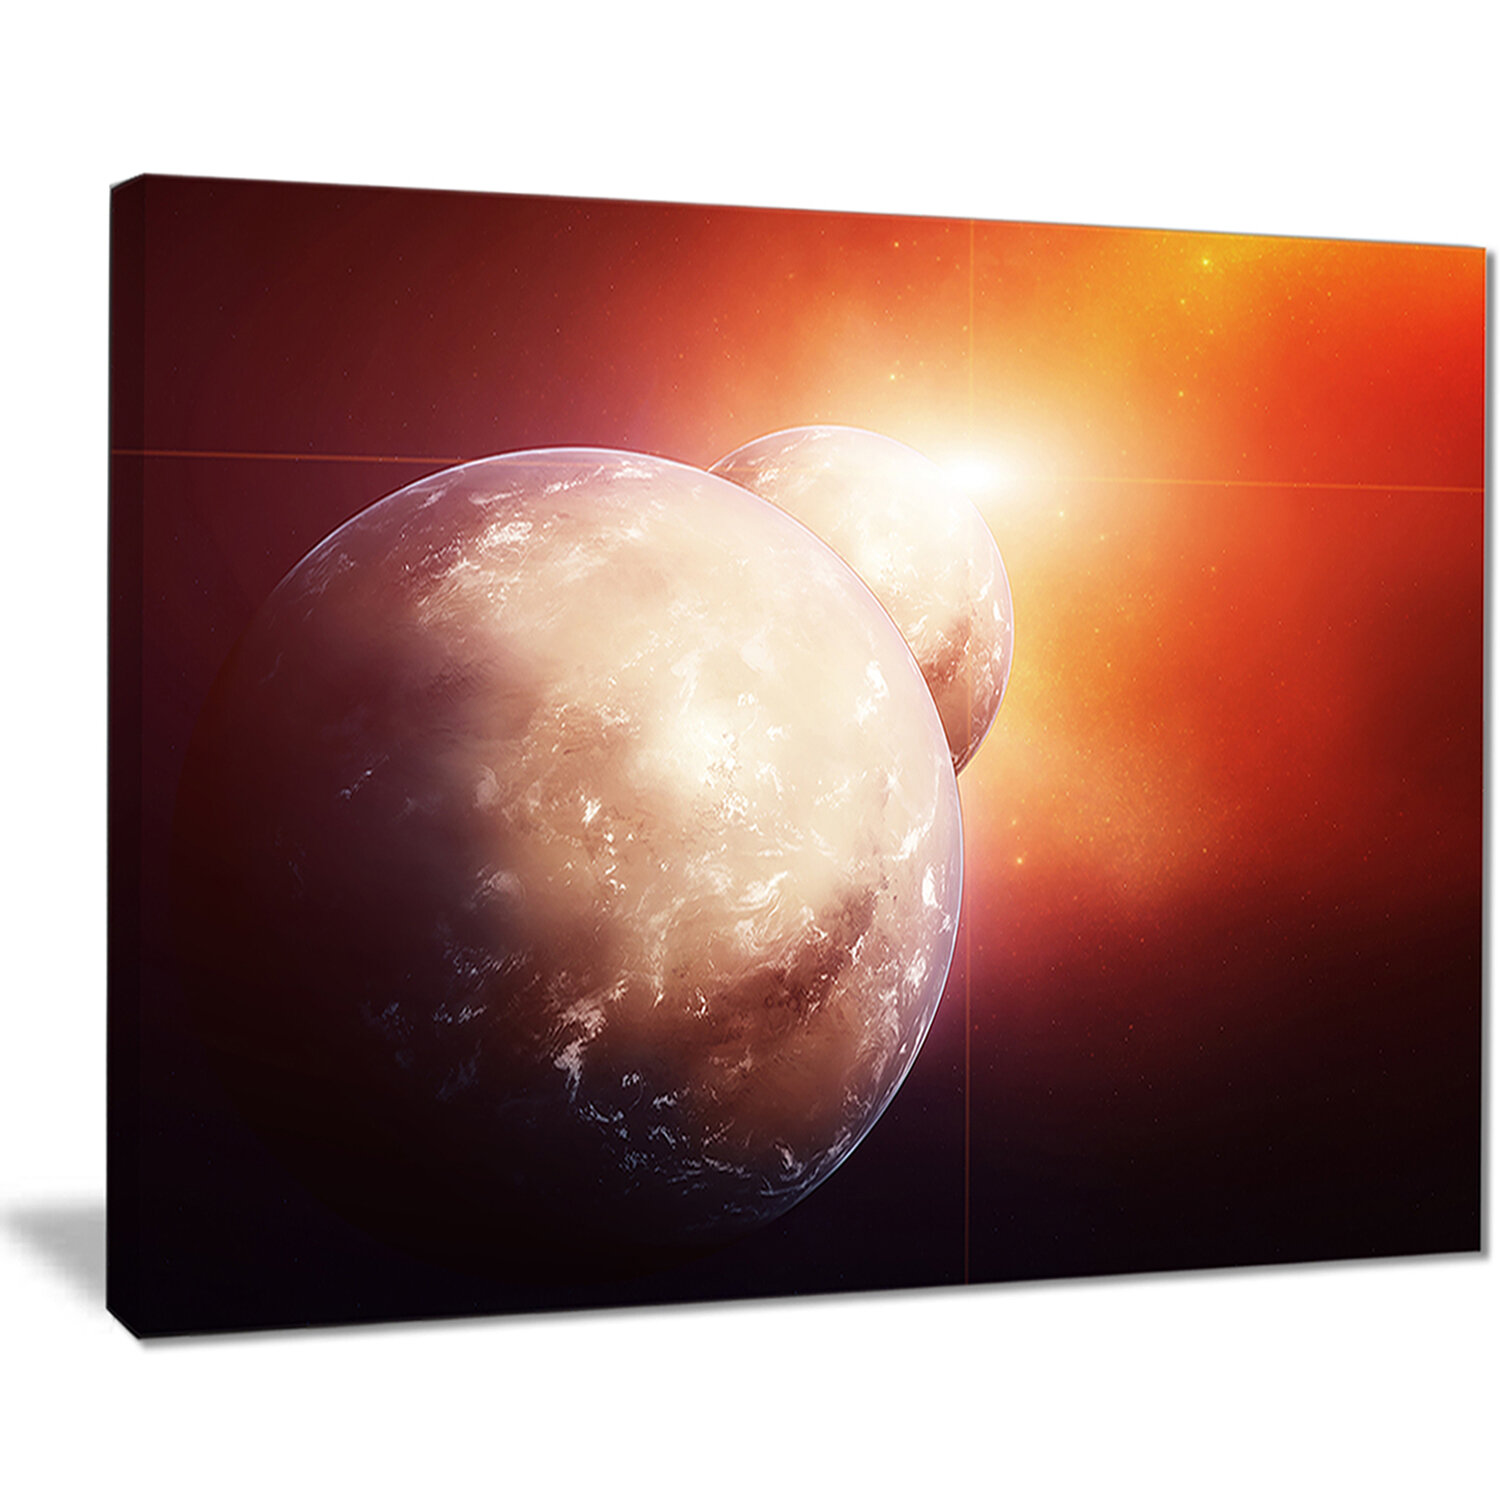 Designart Planets With Rising Star Graphic Art On Wrapped Canvas Wayfair